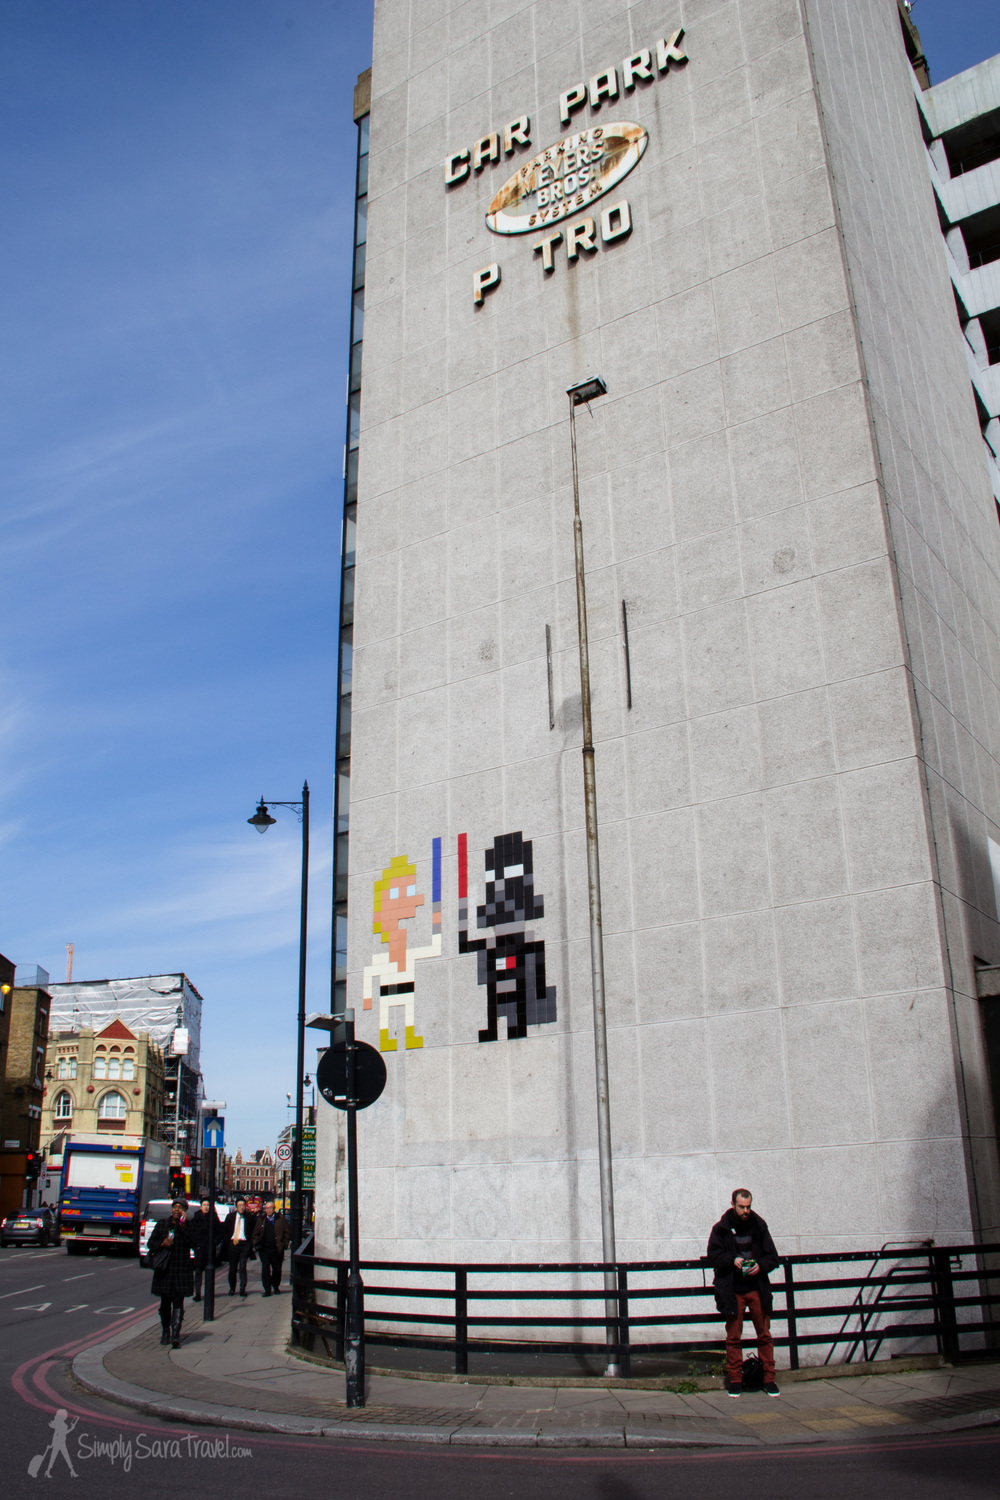 Space Invader strikes again in London!